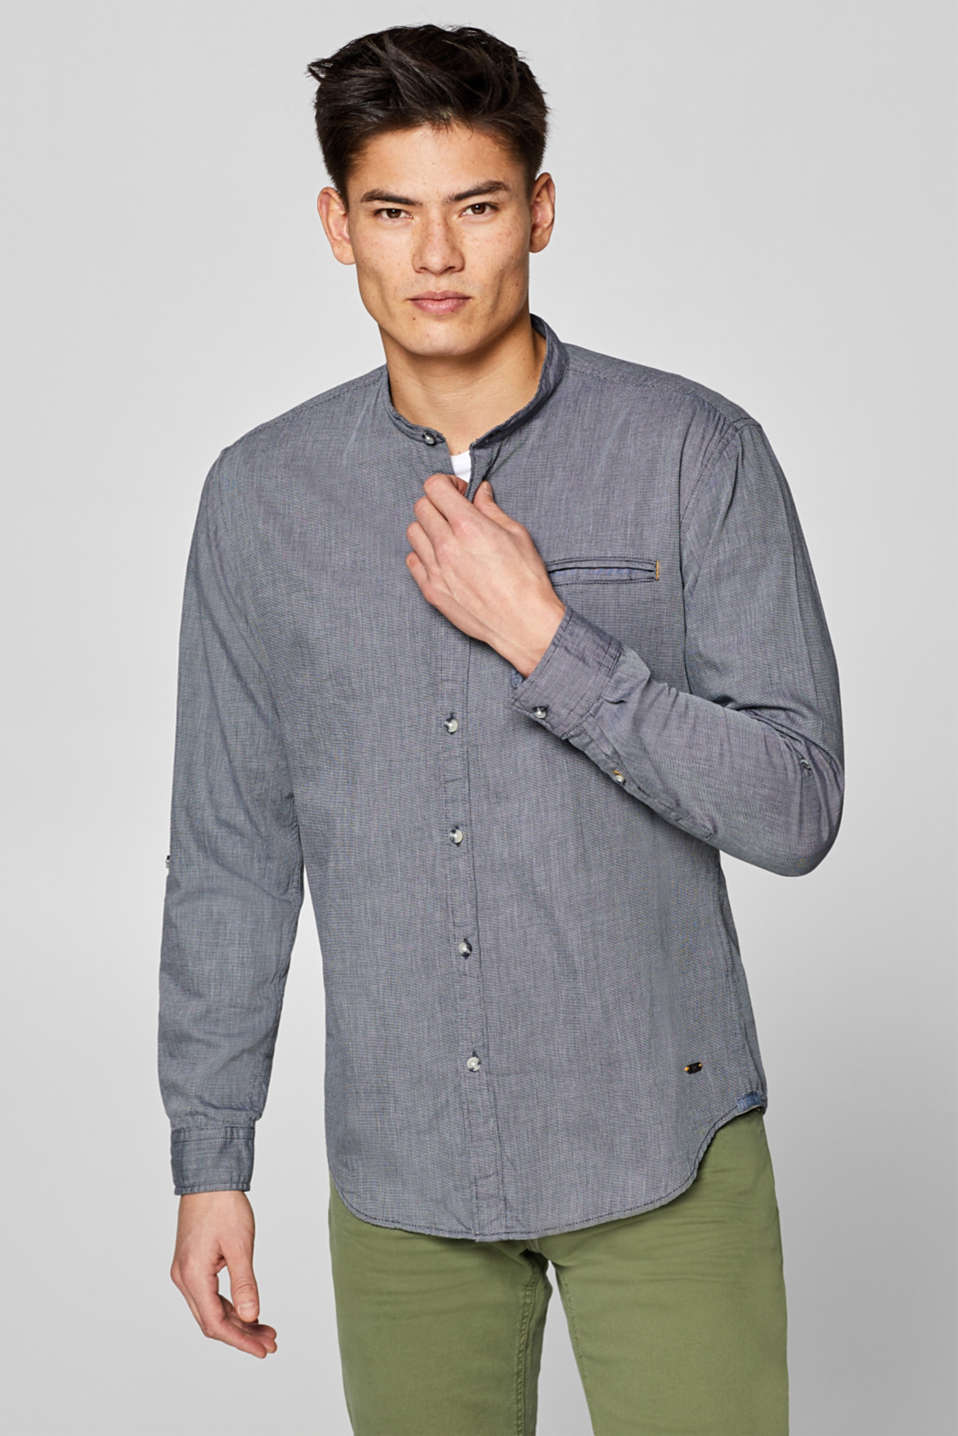 edc - Shirt with band collar made of 100% cotton